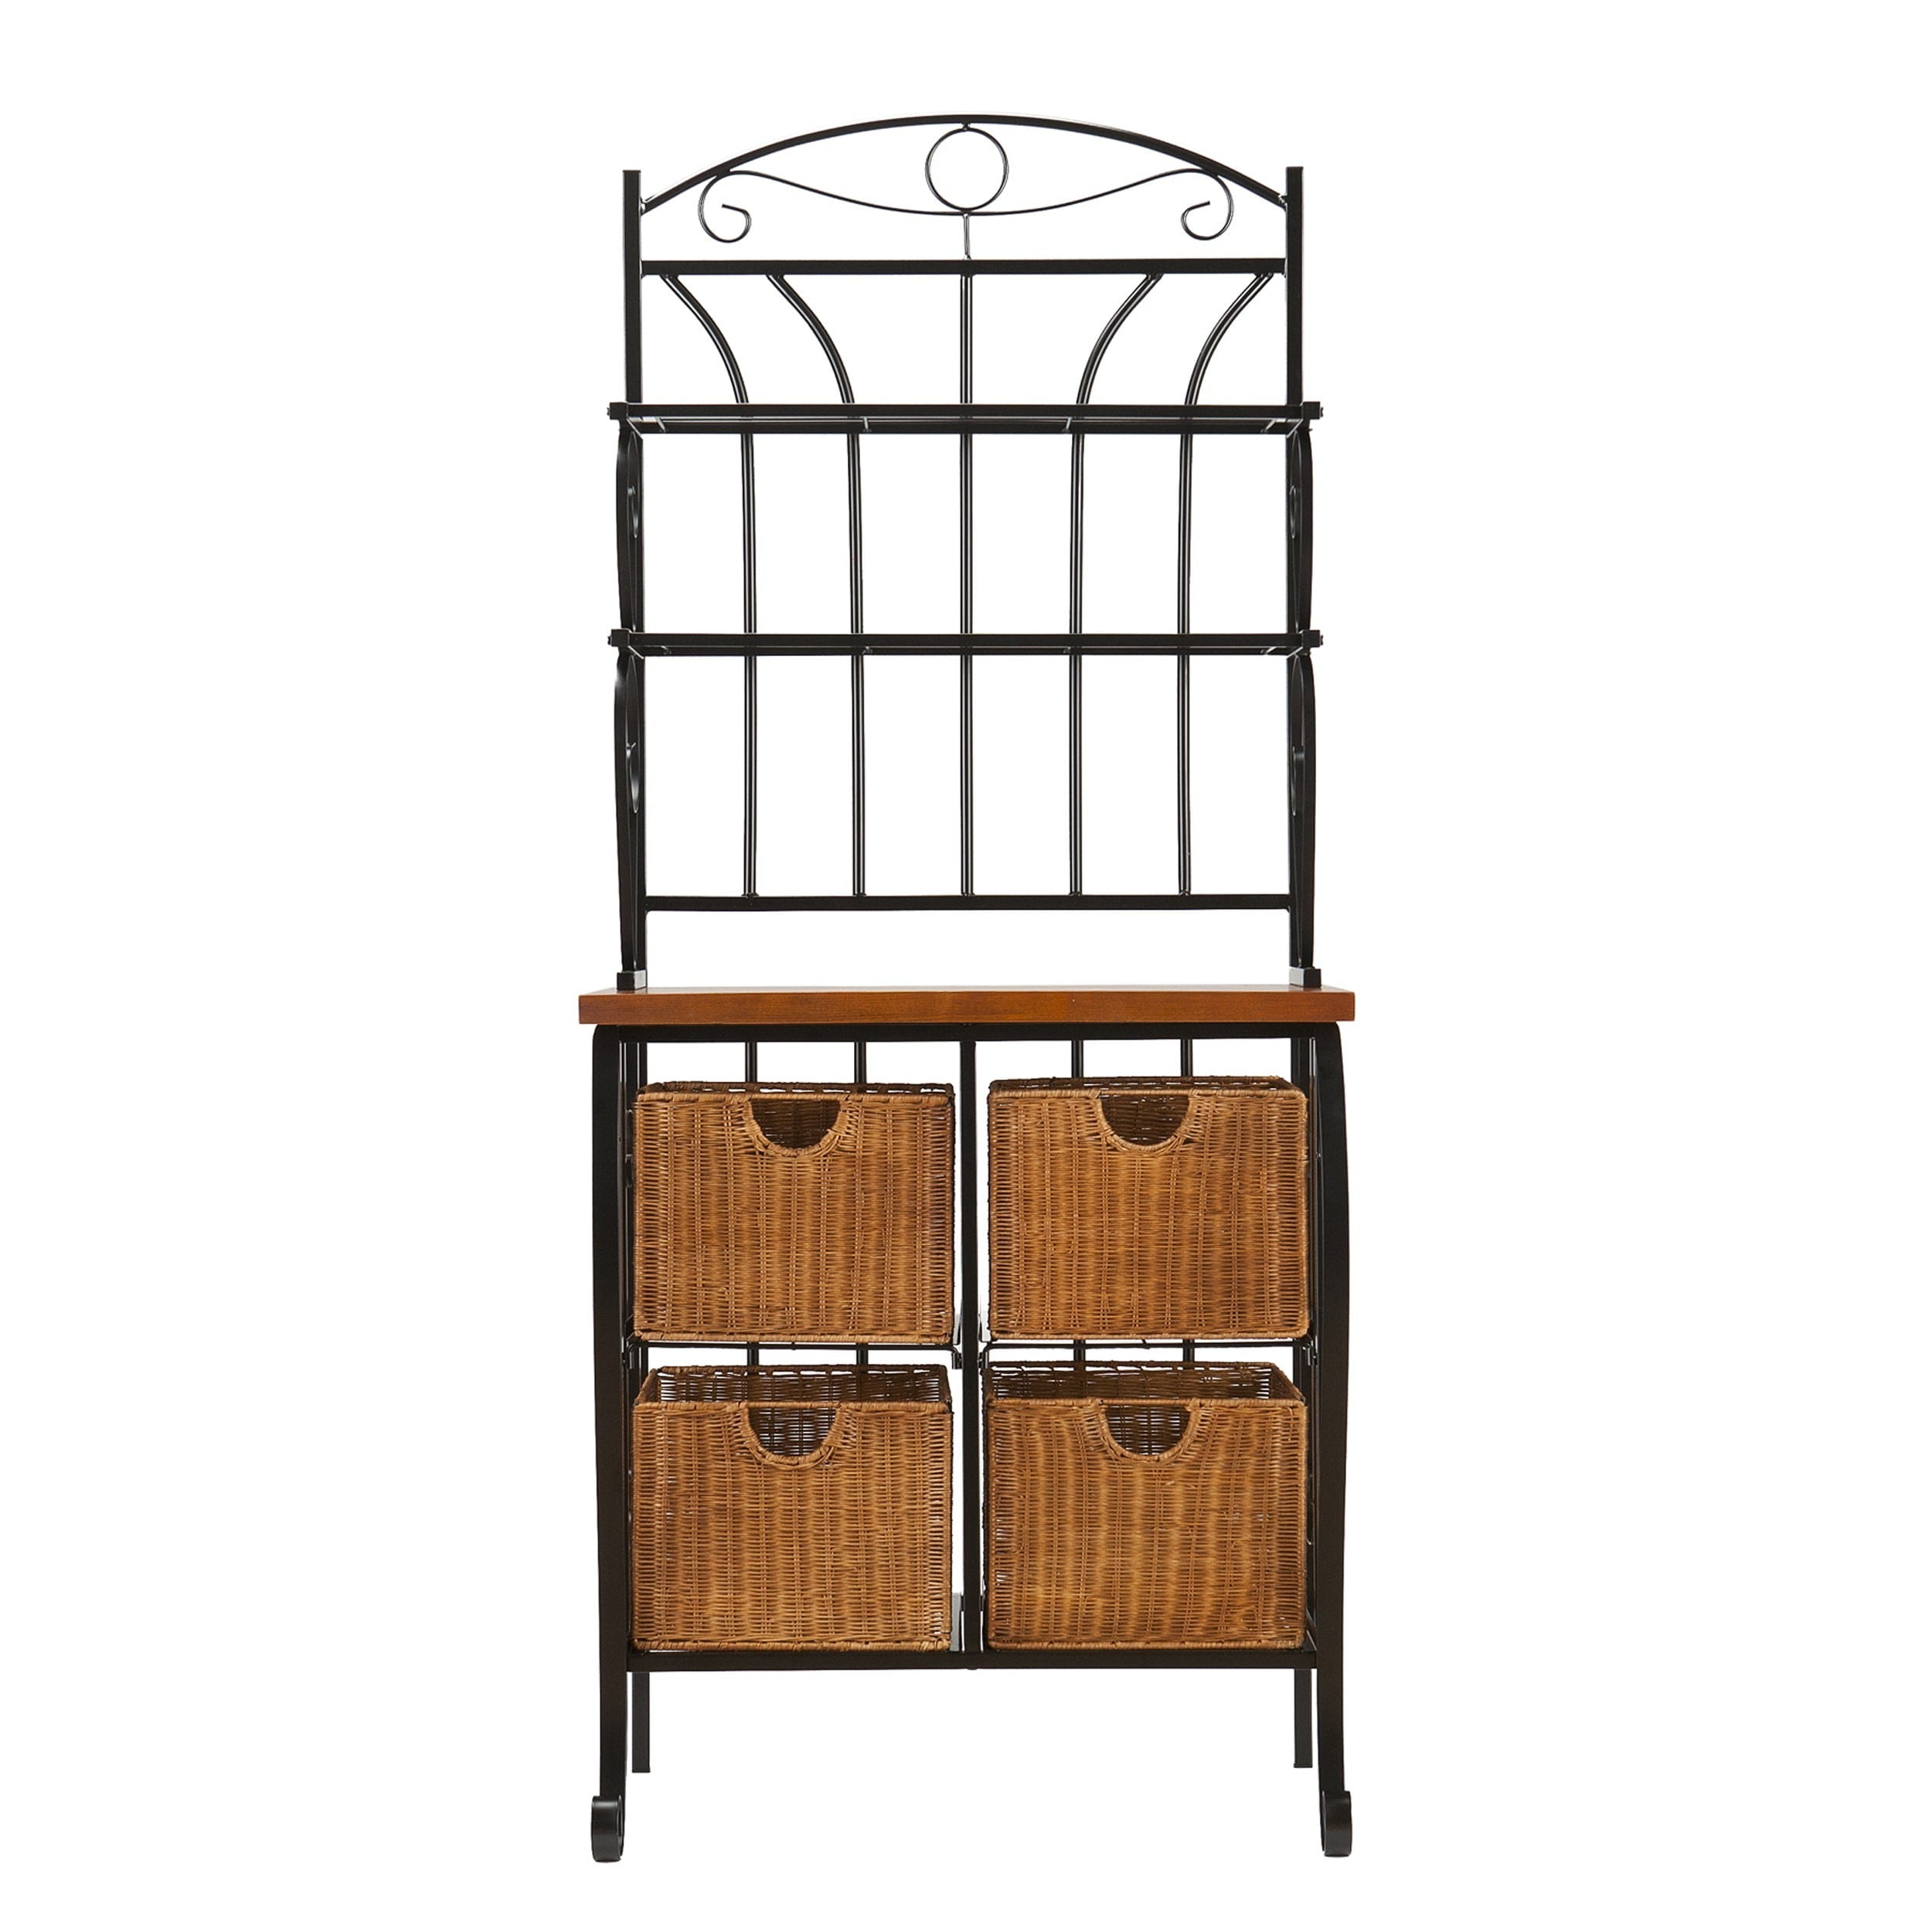 racks as rc shelving is rack witching particular home decor kitchen ideas with furnitureideas what multipurpose drawer a drawers deluxe wells bakers